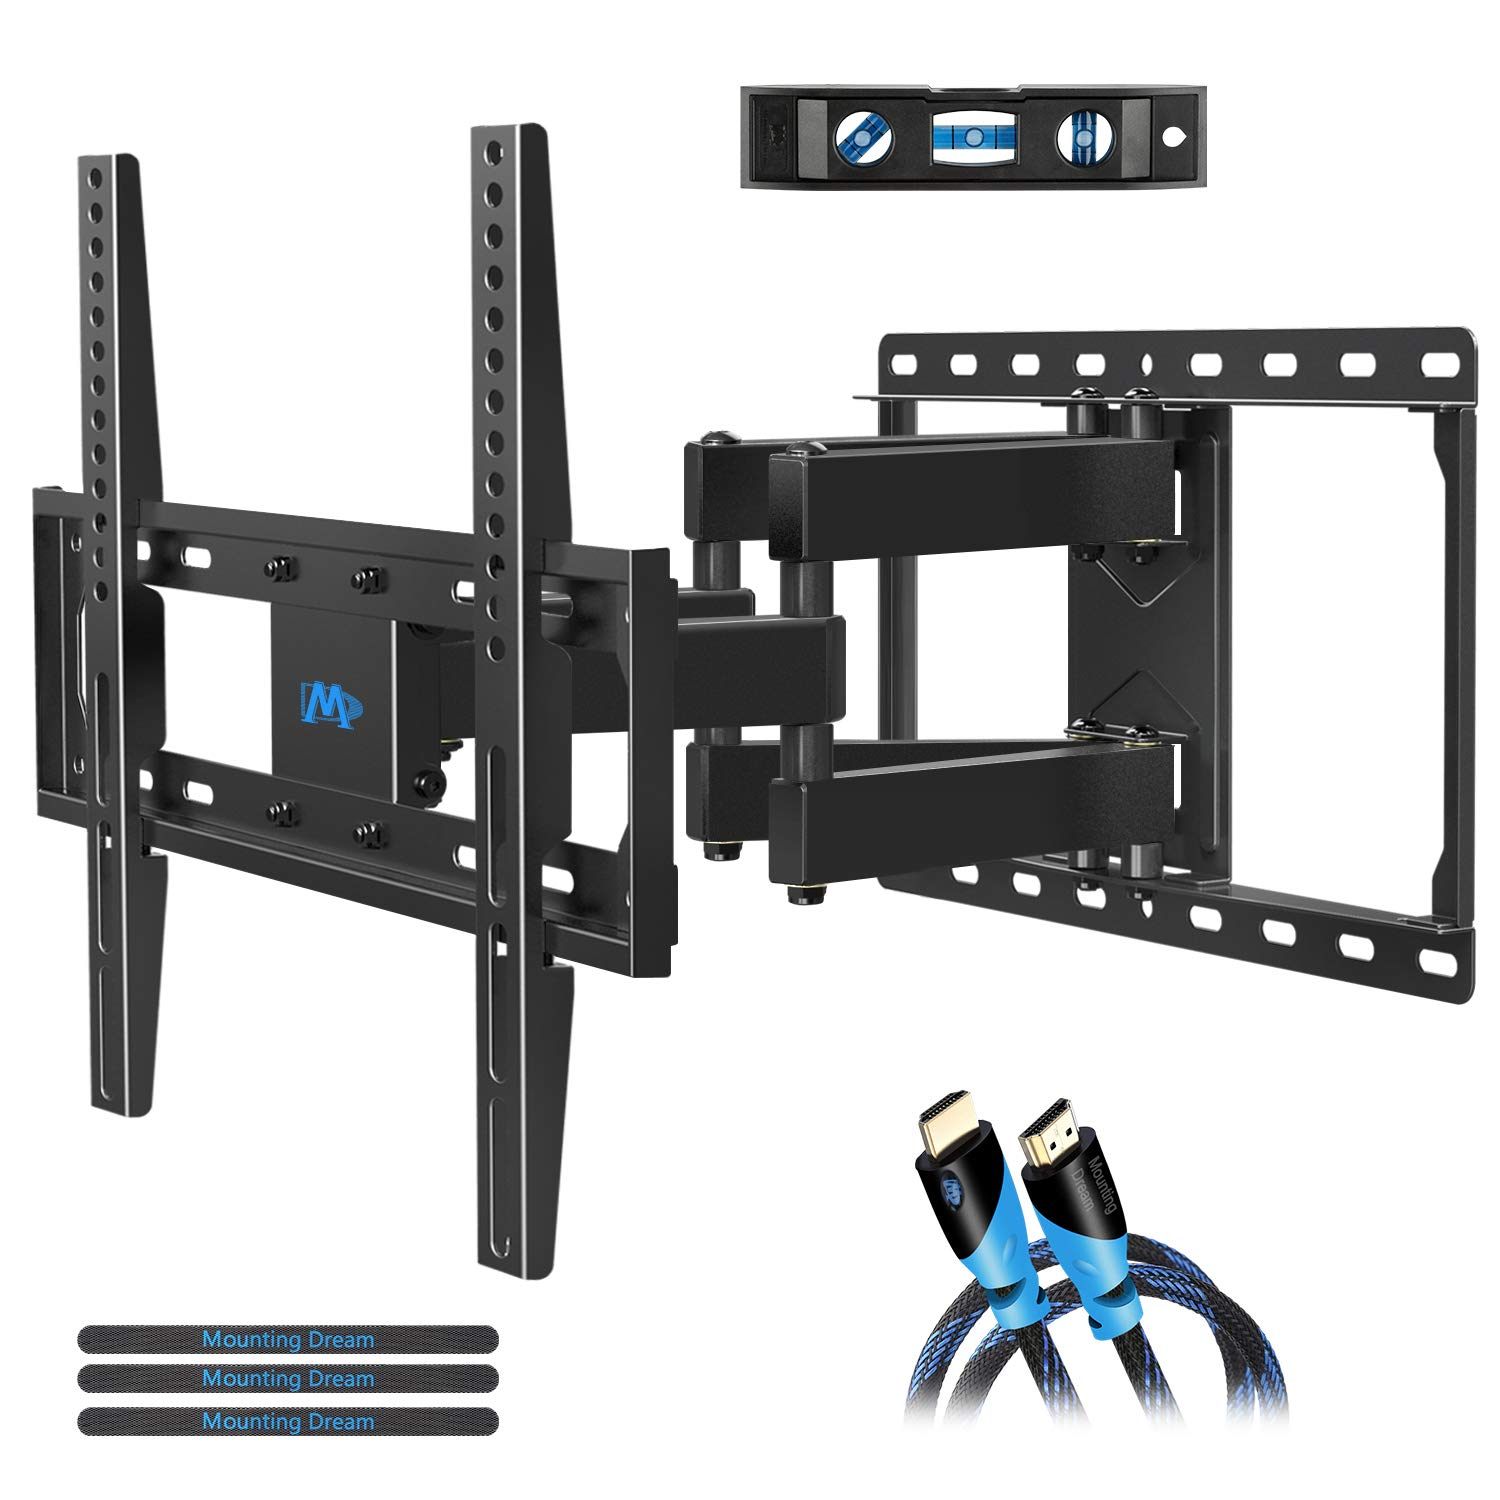 mounting dream tv wall mount tv bracket for most 32 55 inch flat screen tv wall mount bracket. Black Bedroom Furniture Sets. Home Design Ideas